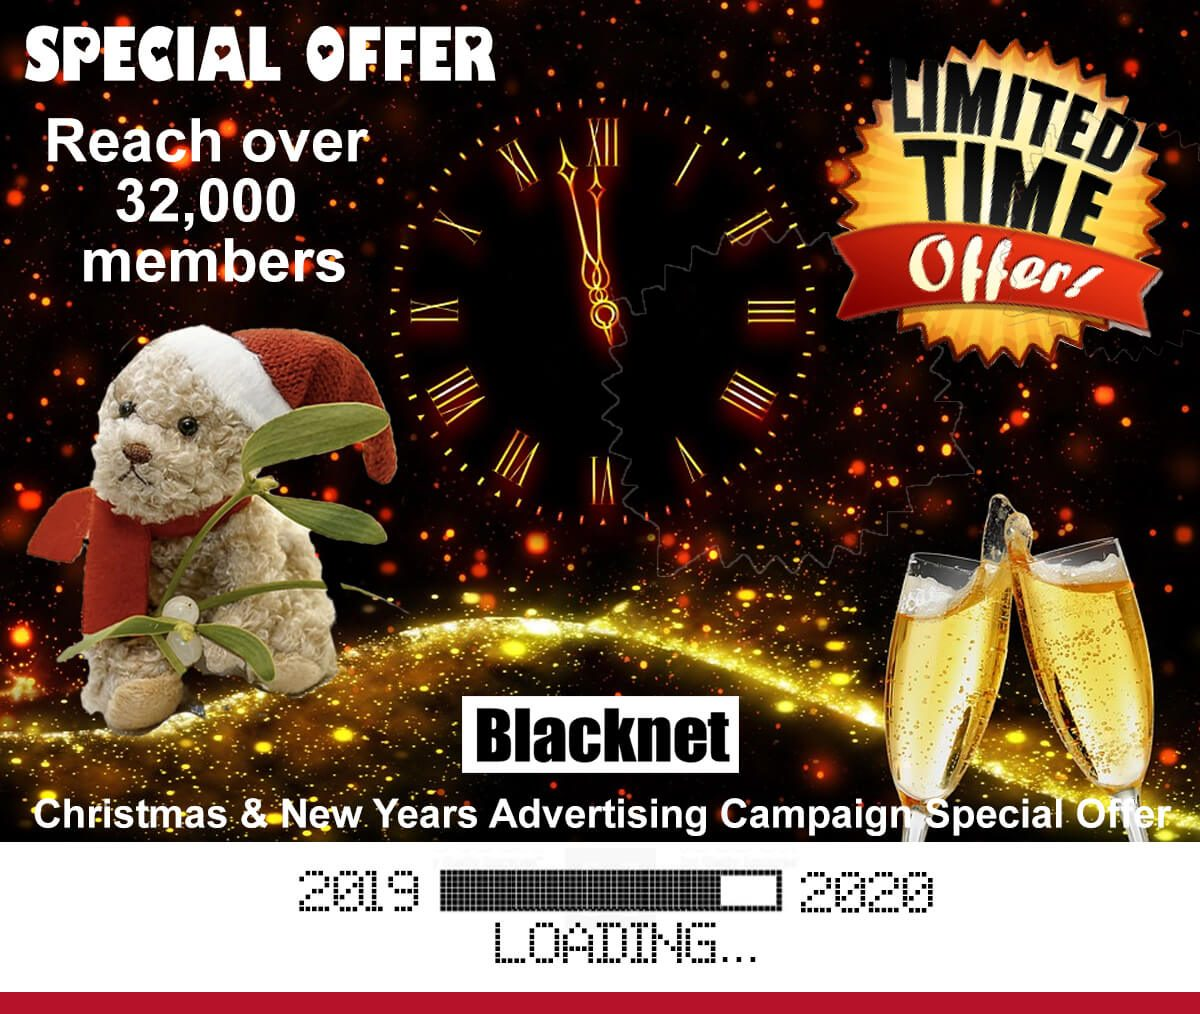 event-organisers-and-promoters-christmas-and-new-years-speical-advertising-campaign-offer-2